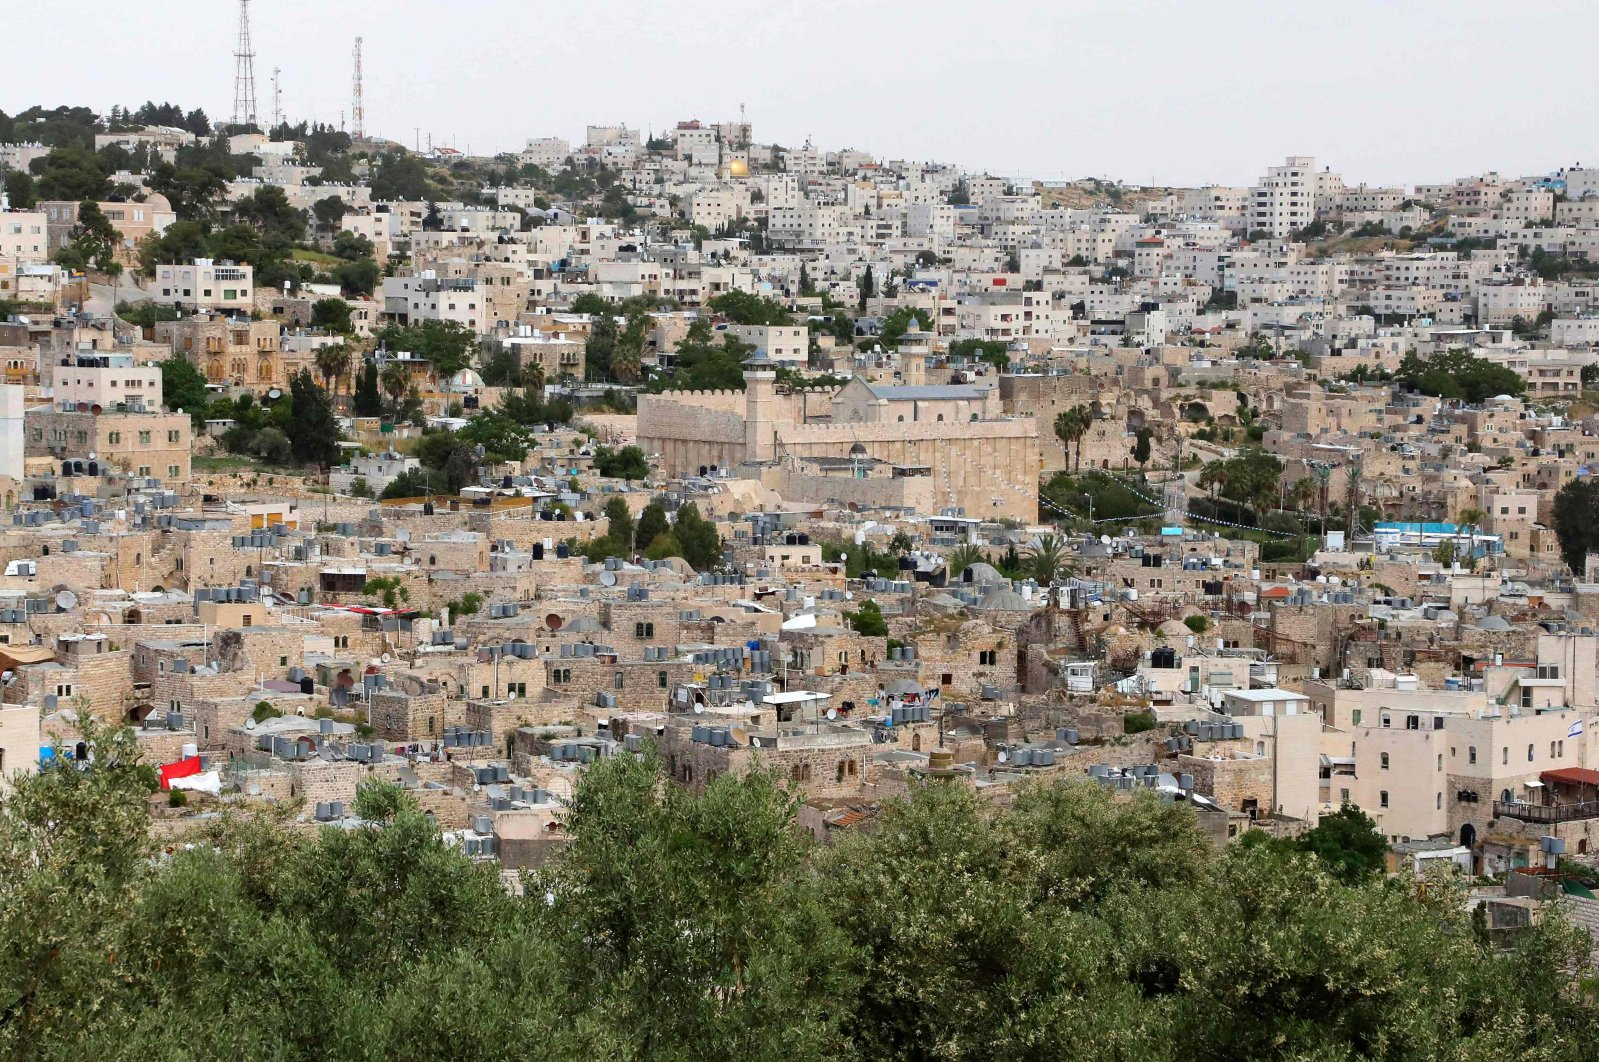 A general view of the Old City of Hebron with the Ibrahimi mosque, or the Tomb of the Patriarchs, closed down during the coronavirus pandemic crisis, occupied West Bank, on May 15, 2020. (AFP Photo)